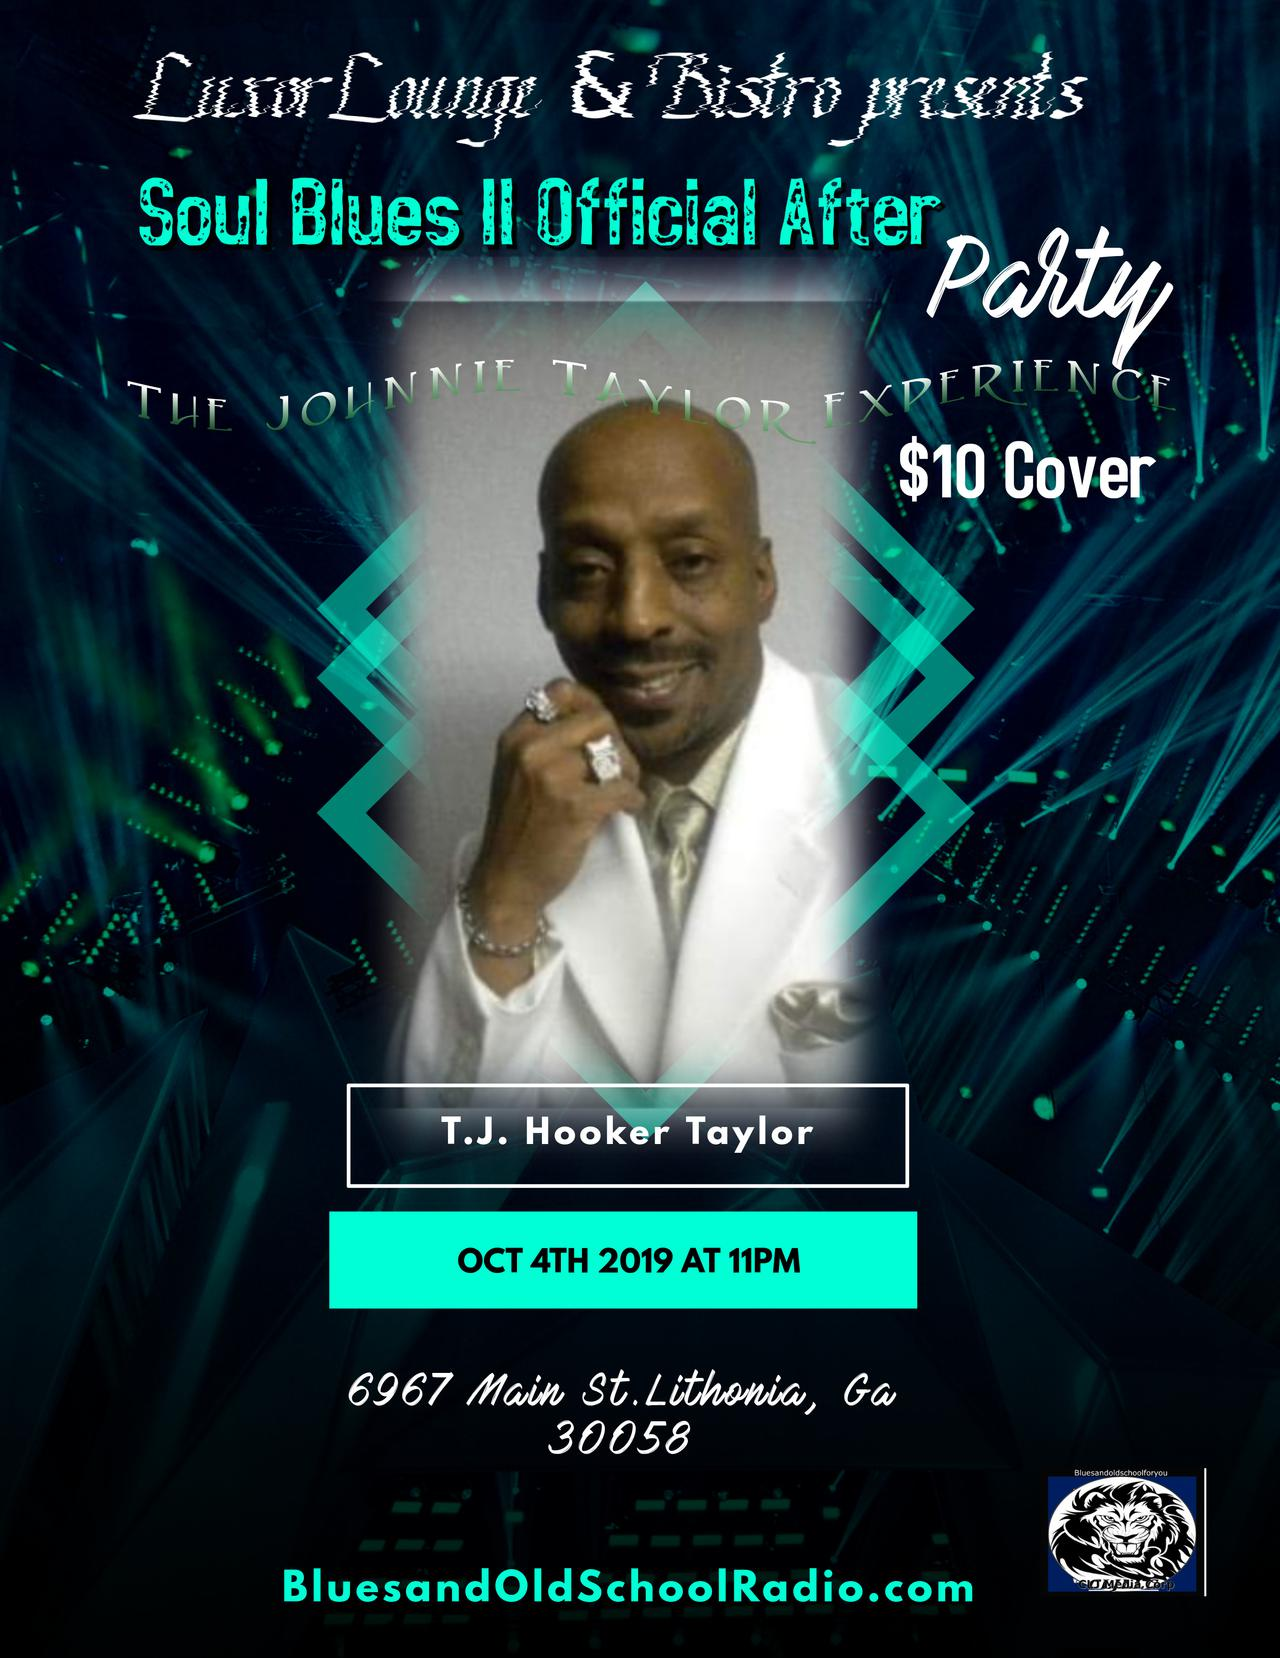 Soul Blues II After Party flyer template